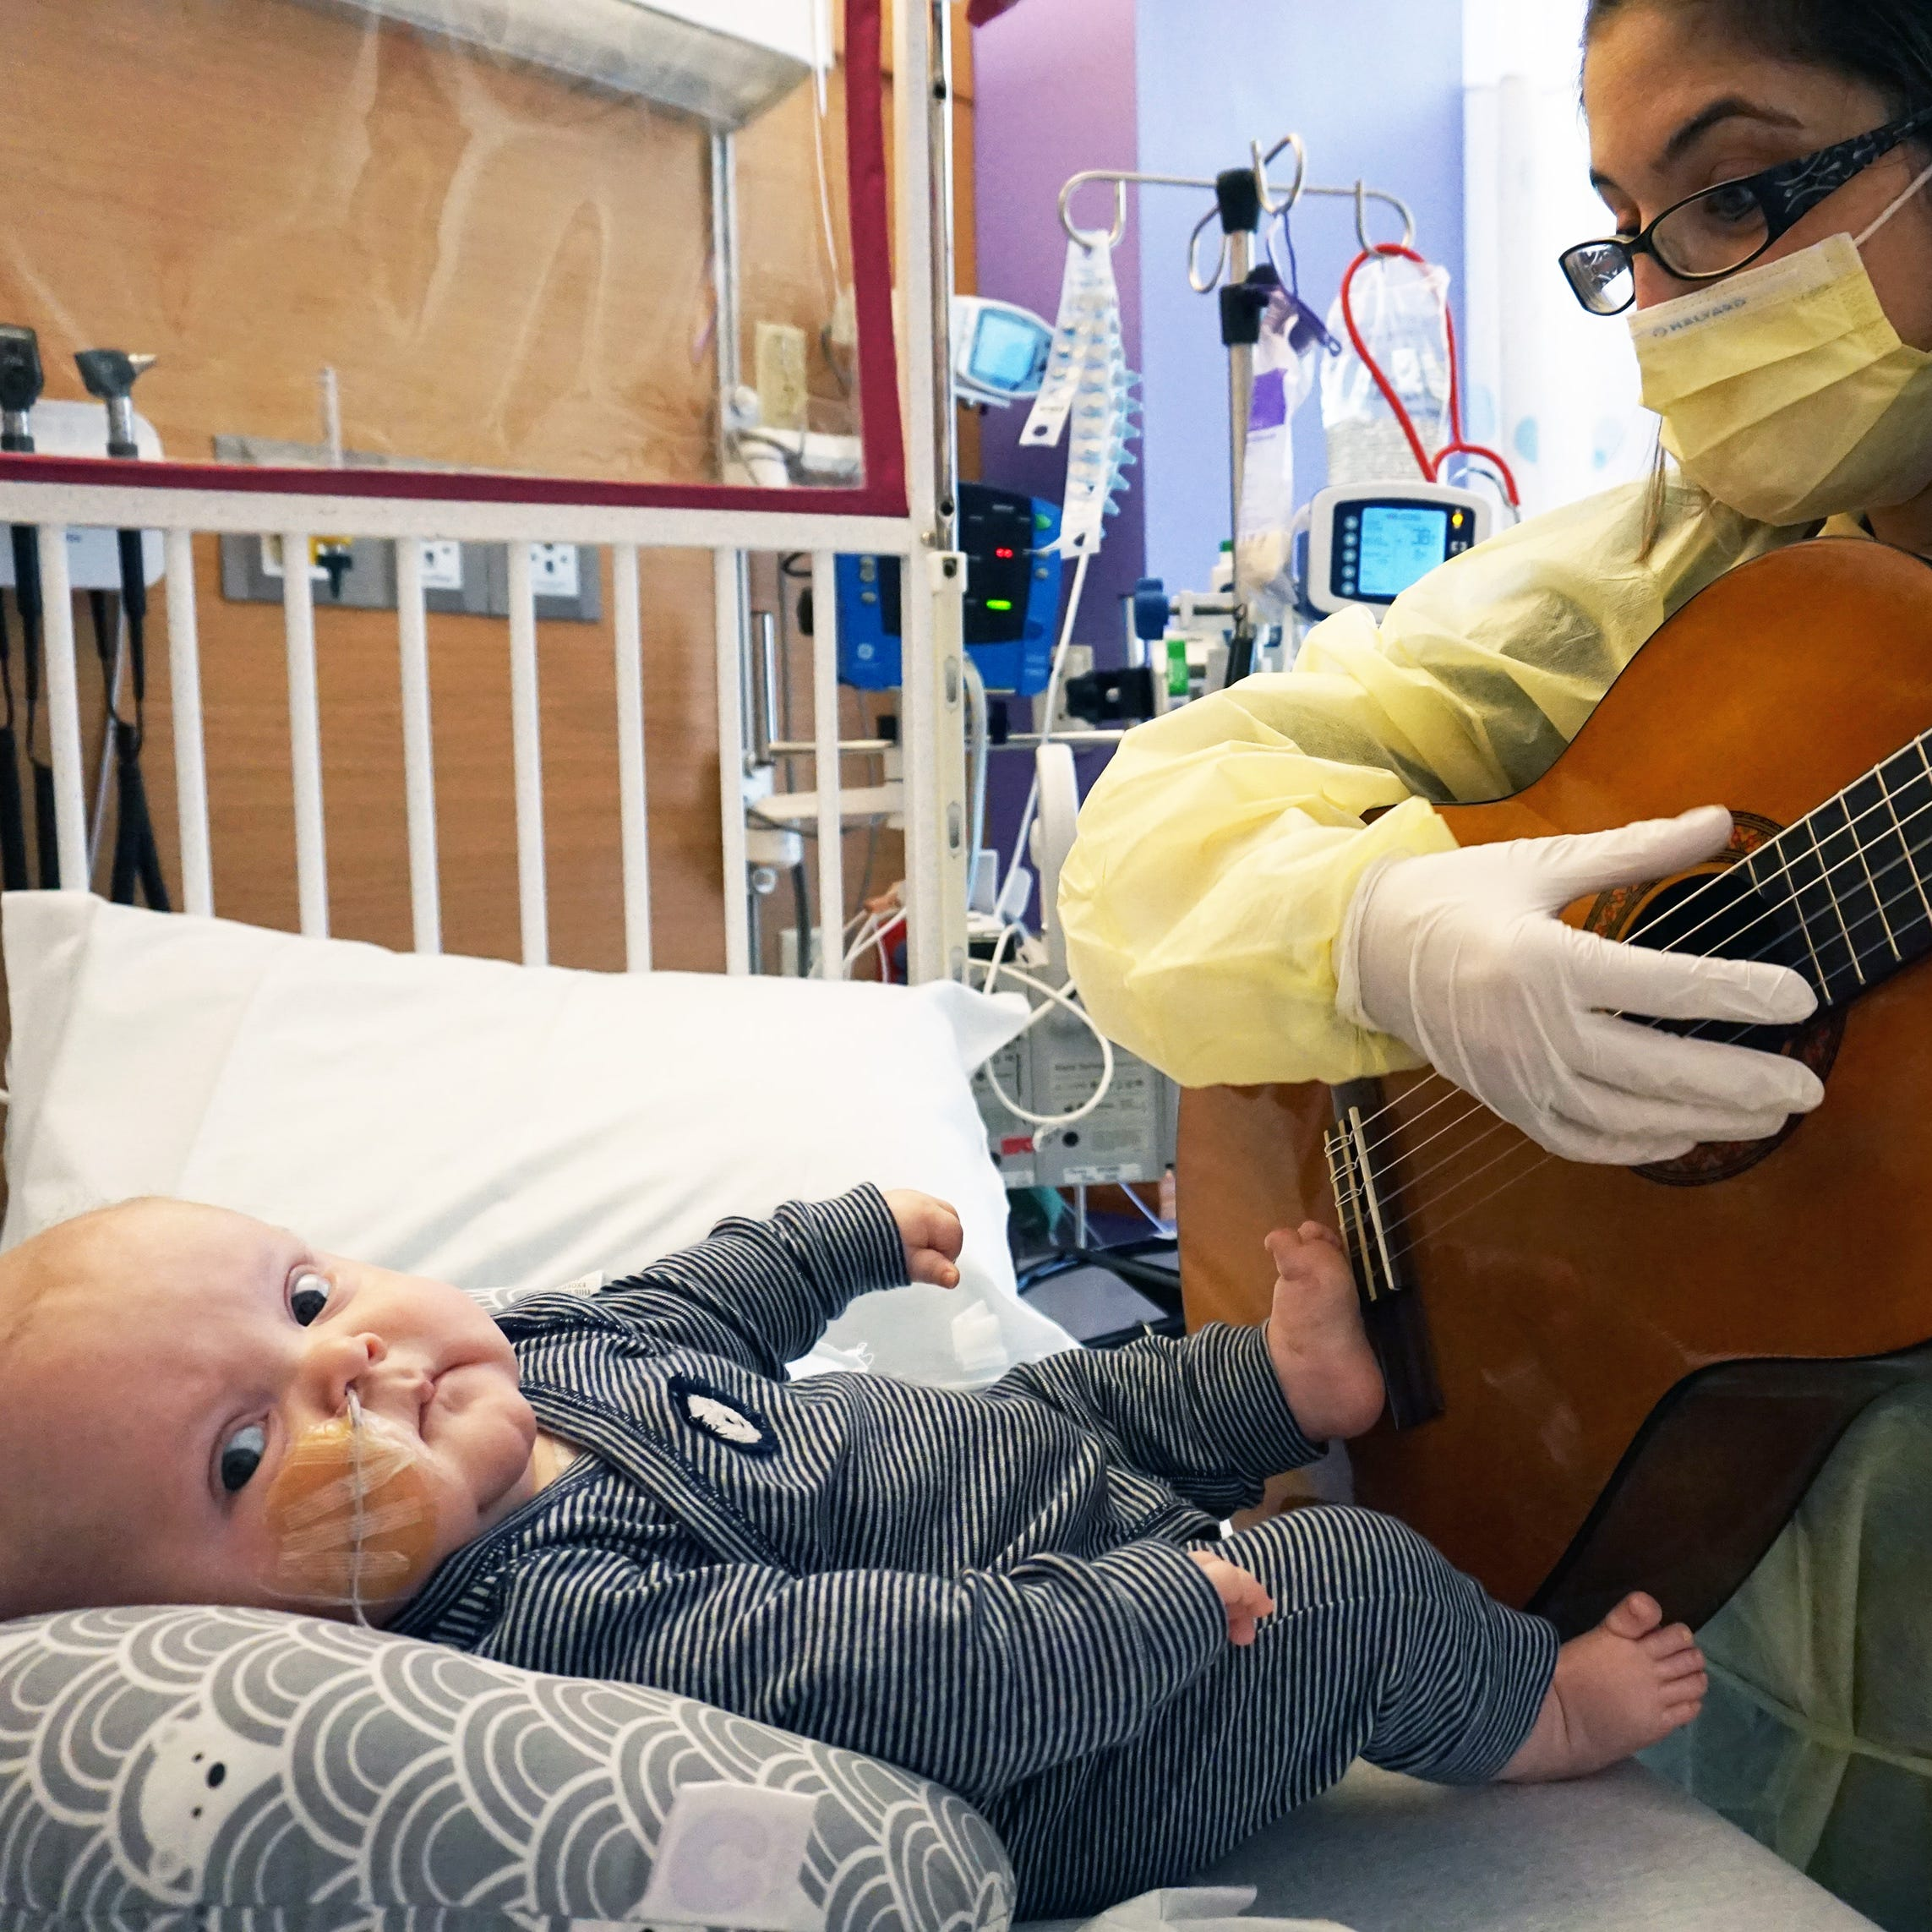 Stingl: Tom Petty songs get 7-month-old Billy through a transplant and a long hospital stay